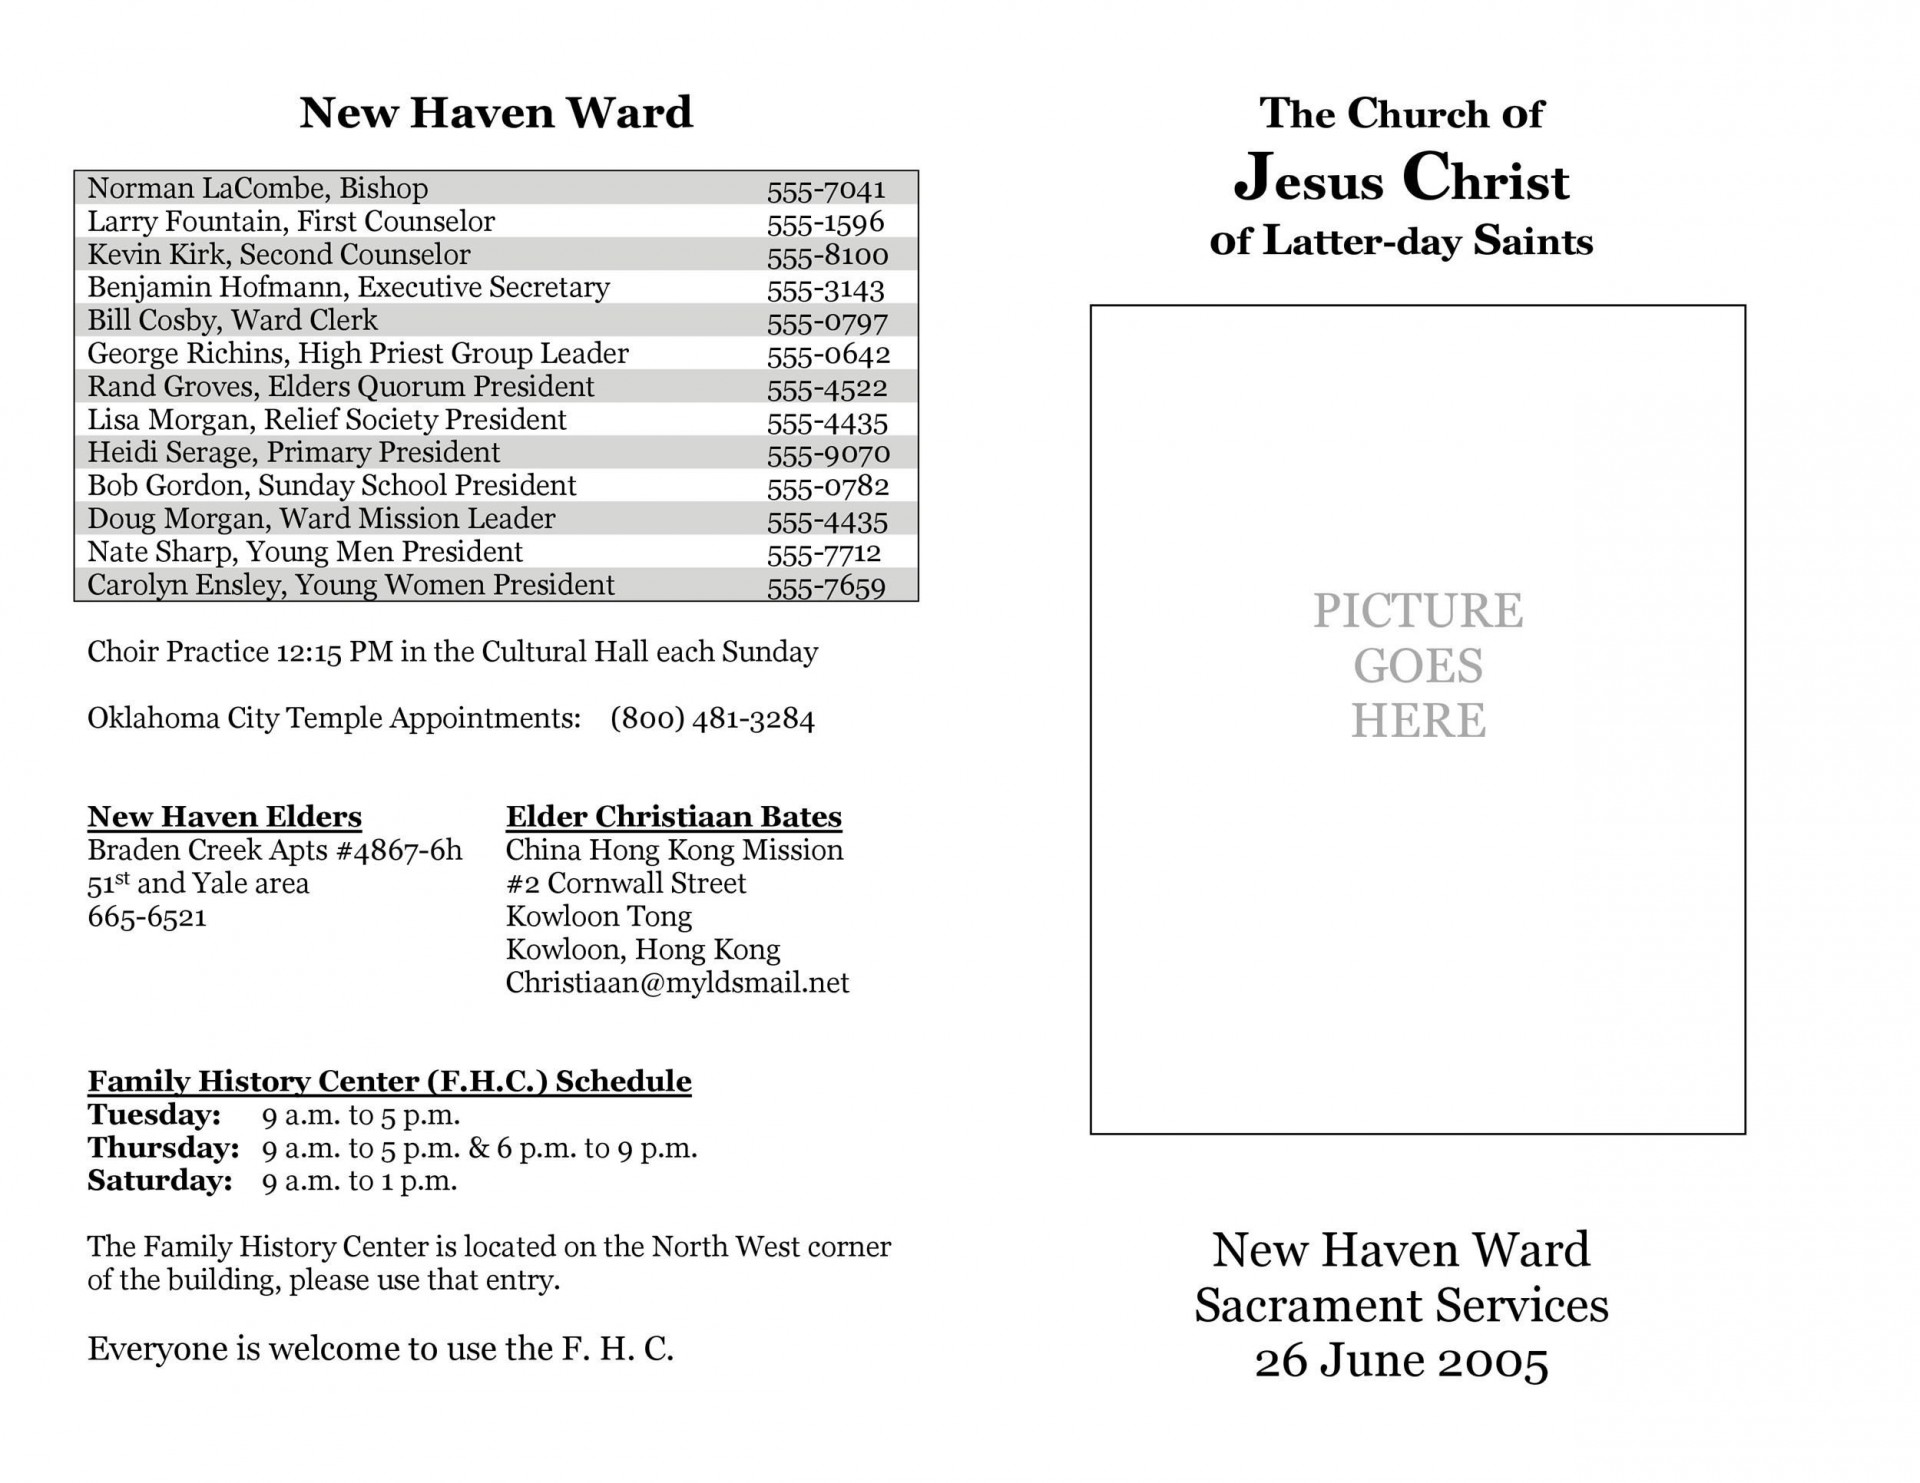 002 Awesome Free Church Program Template Doc Highest Clarity 1920